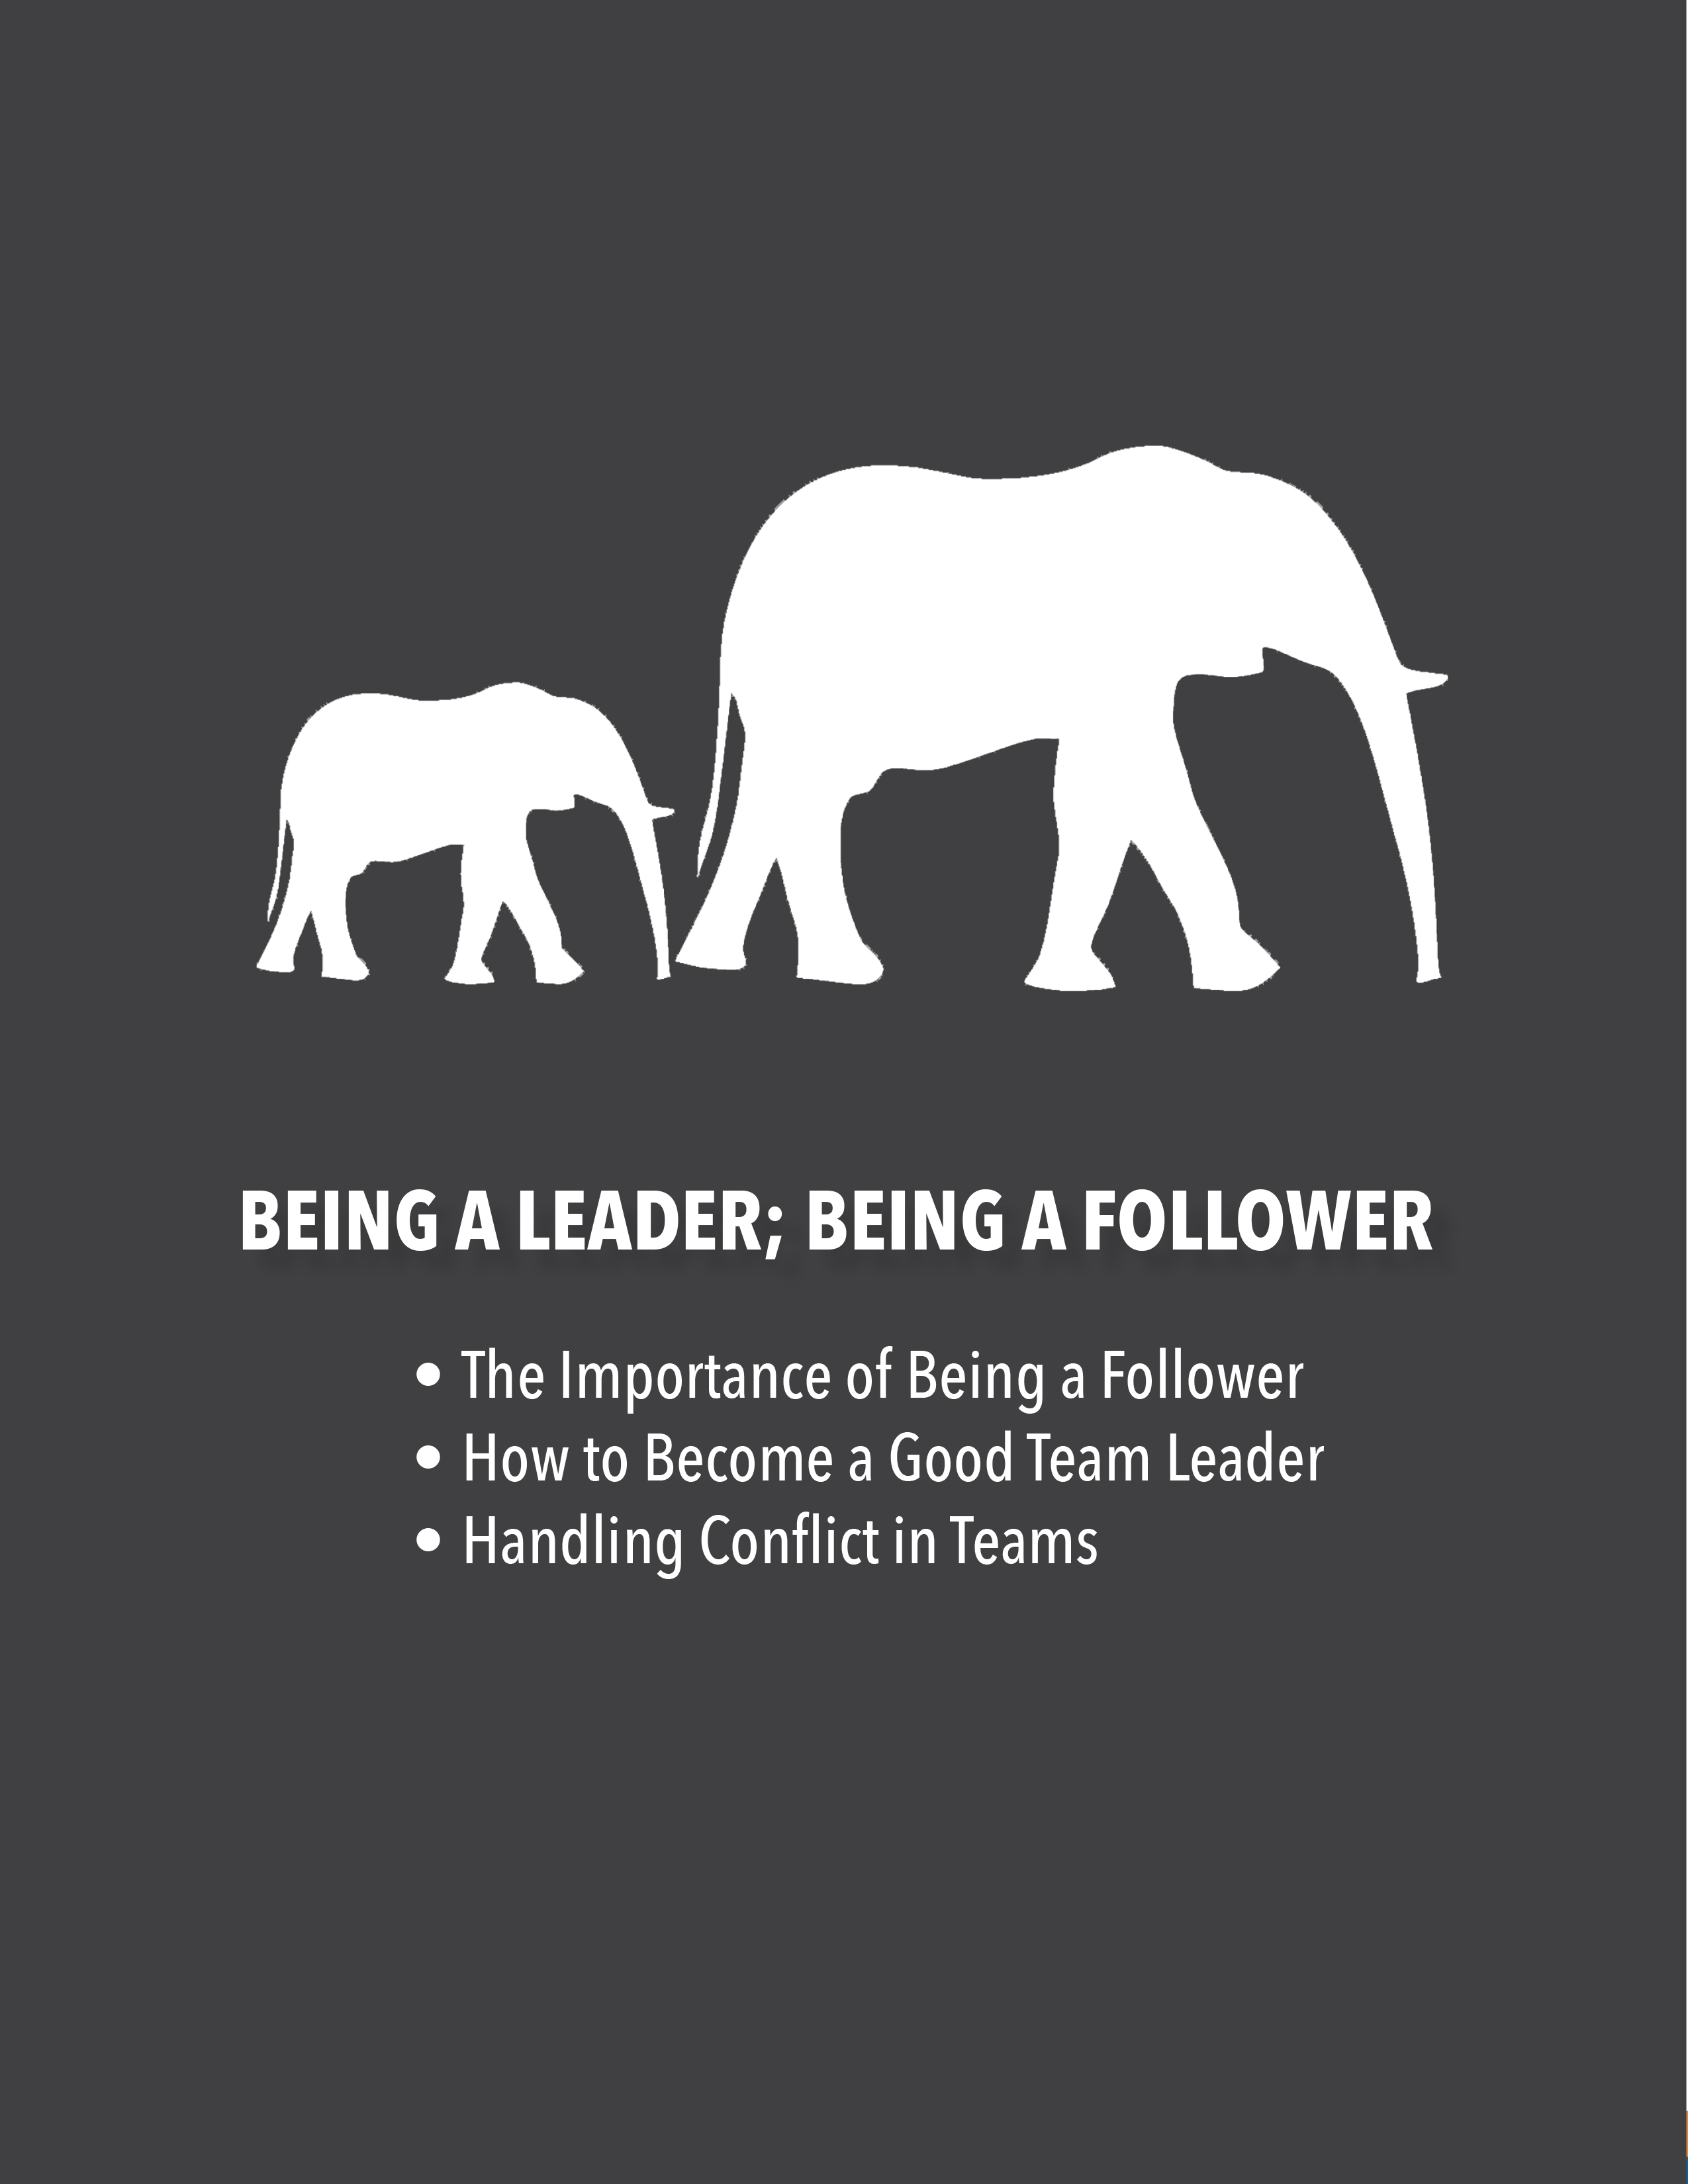 Being a Leader; Being a Follower: The Importance of Being a Follower, How to Become a Good Team Leader, Handling Conflict in Teams